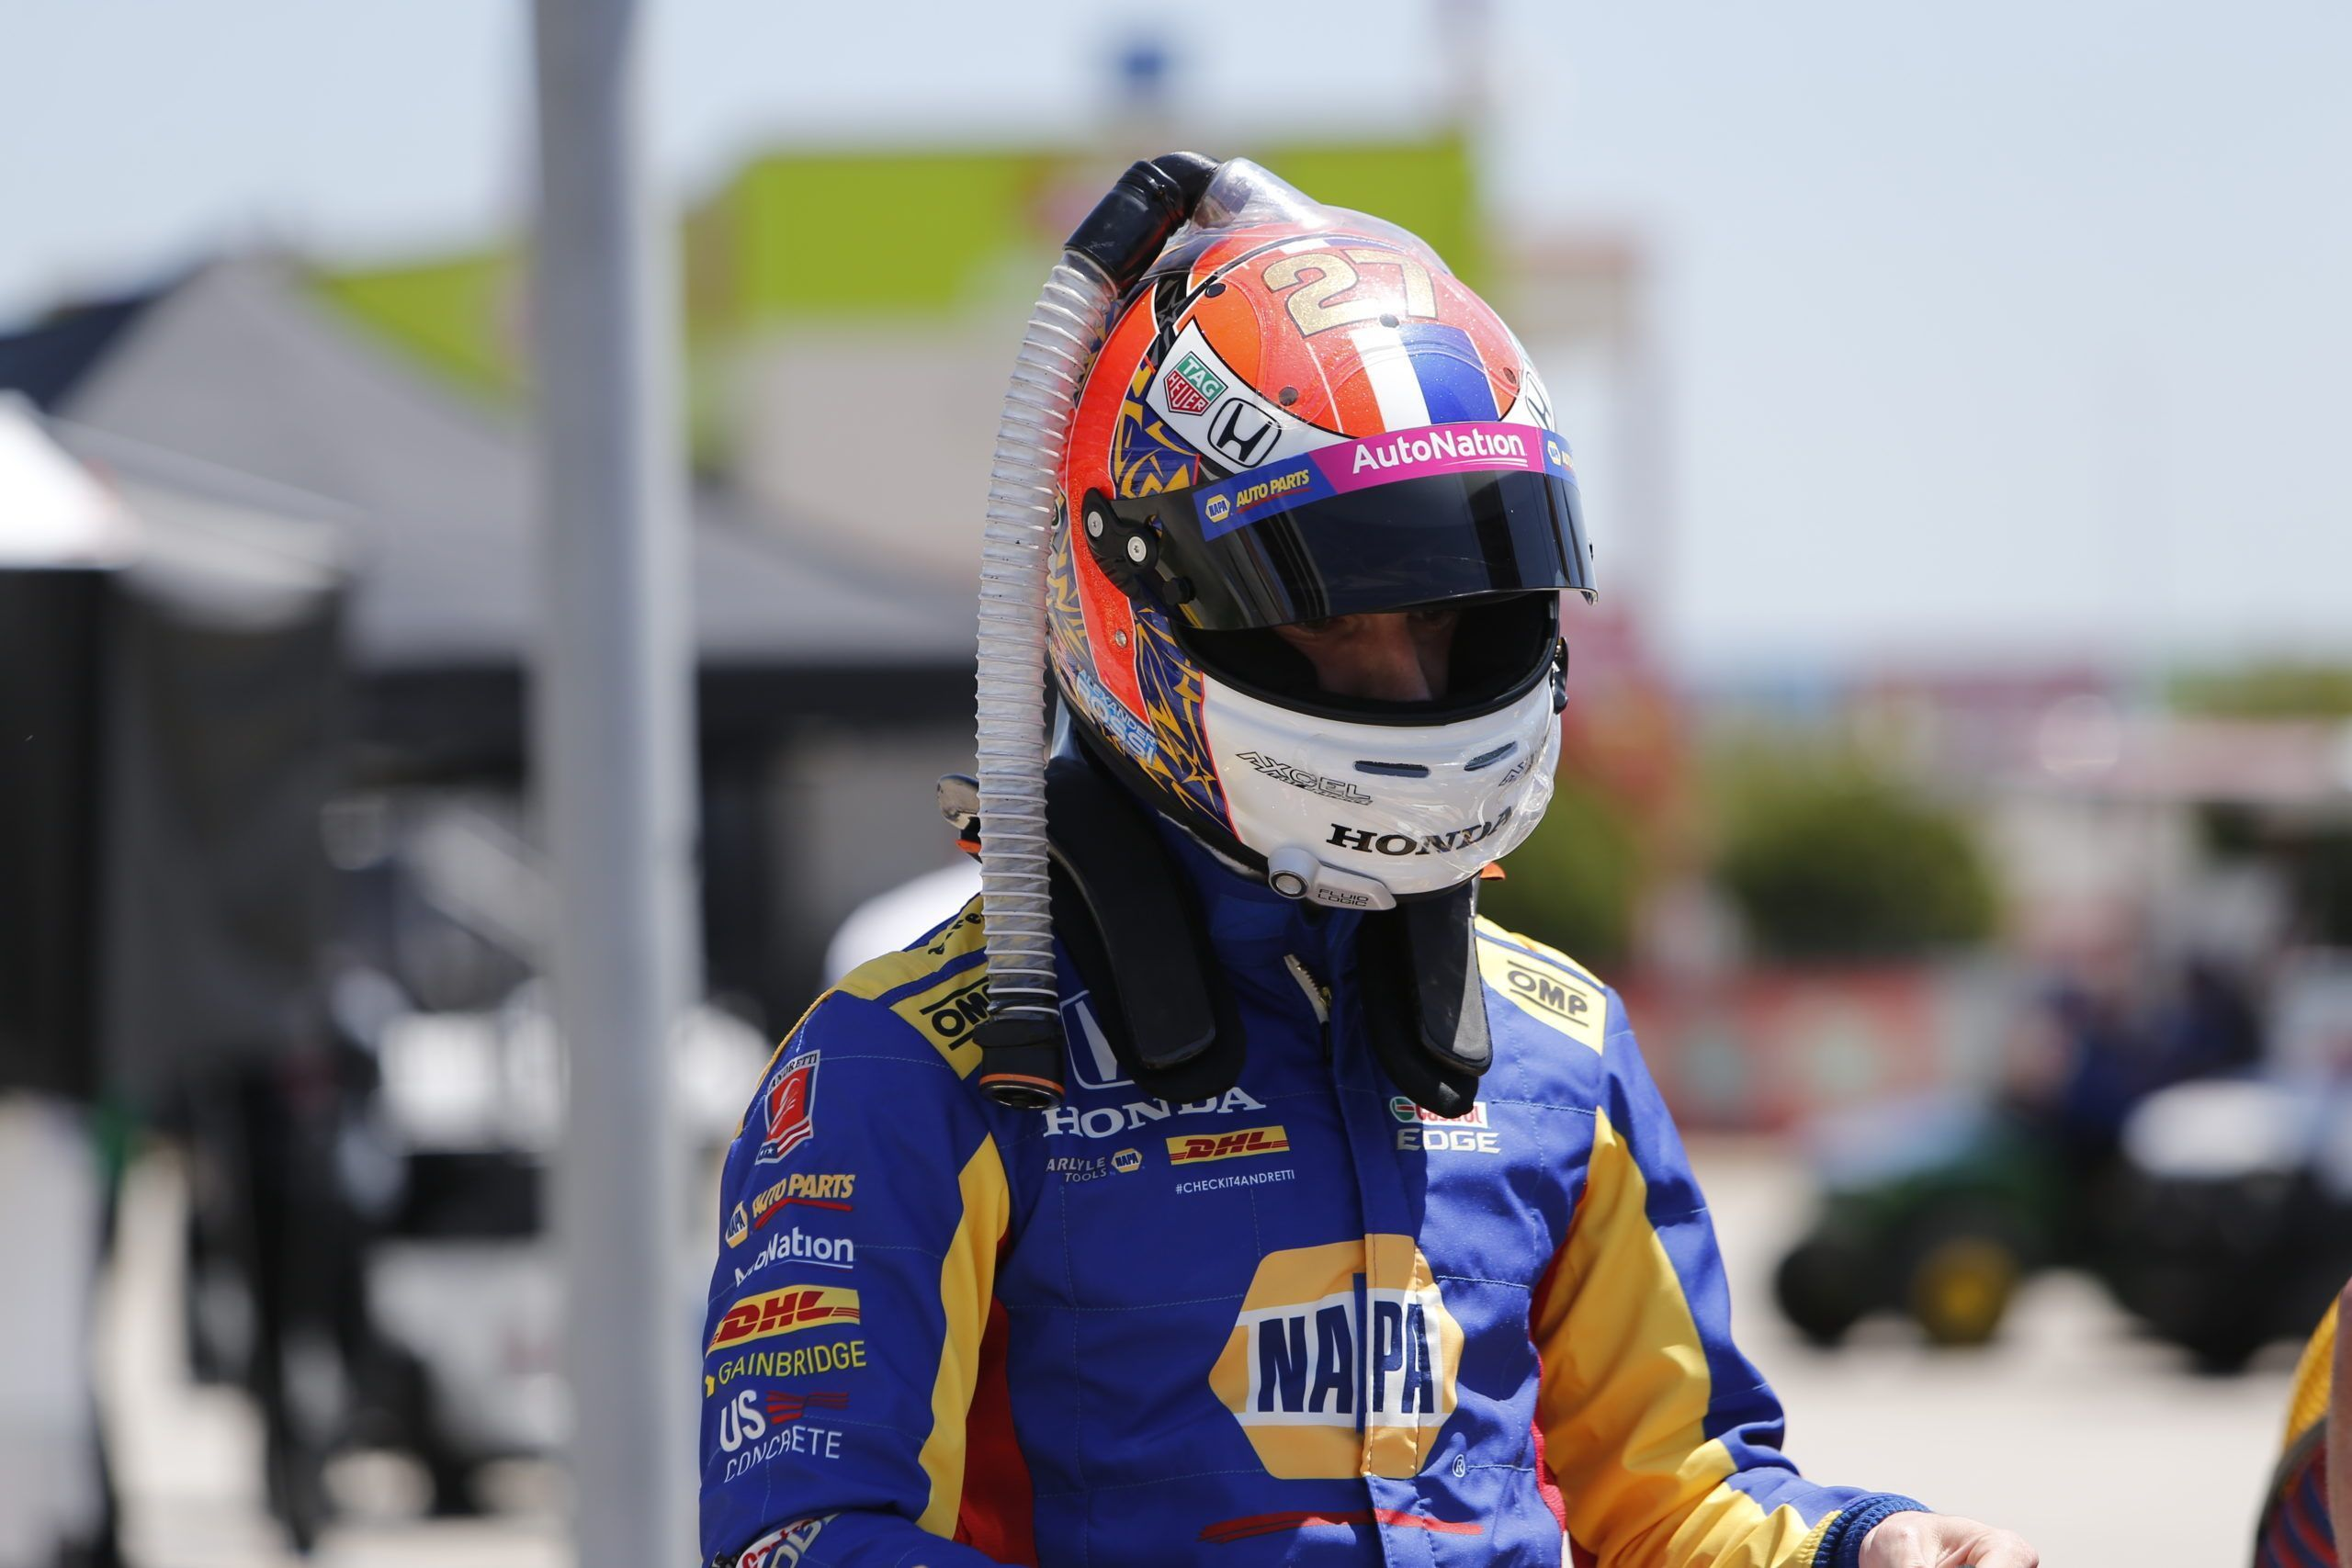 Andretti IndyCar driver Alexander Rossi